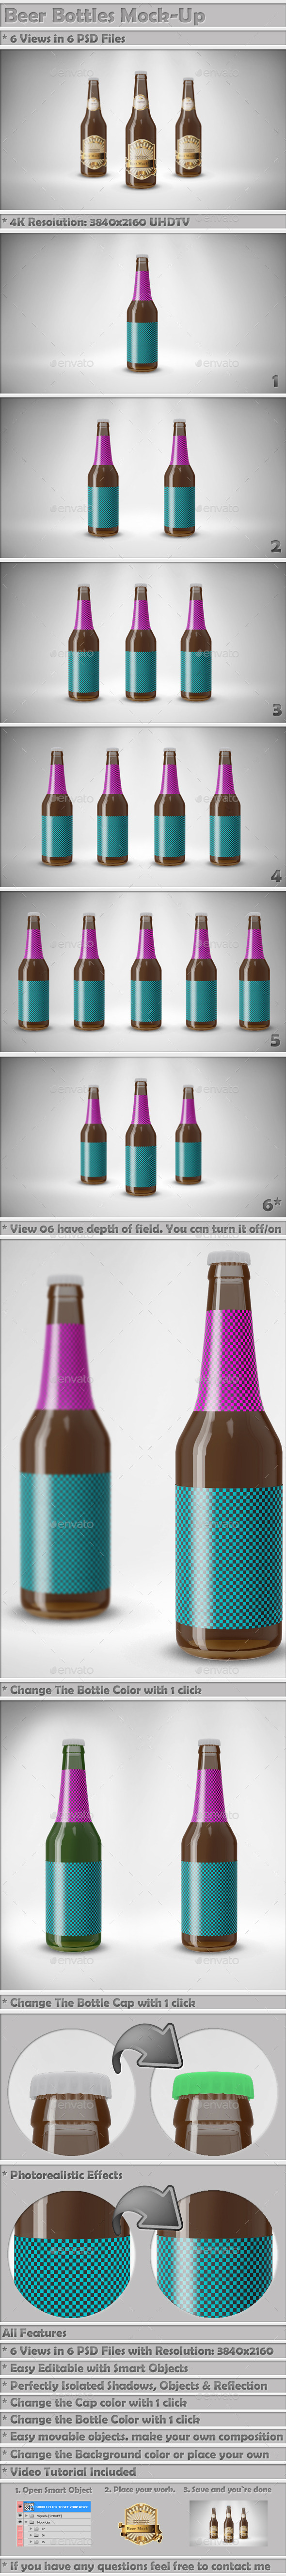 GraphicRiver Beer Bottle Mock-Up 9268264